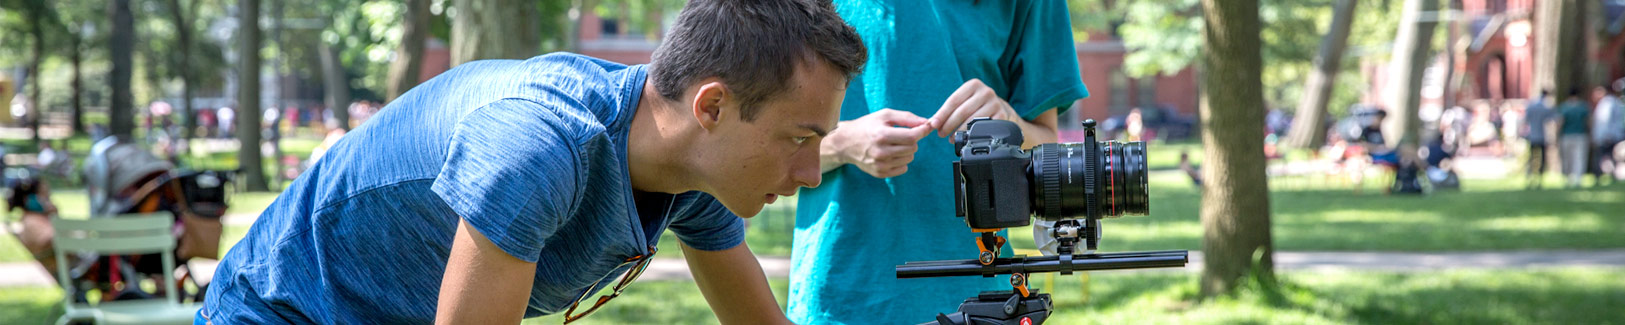 Four Week Advanced Filmmaking Camp for Teens